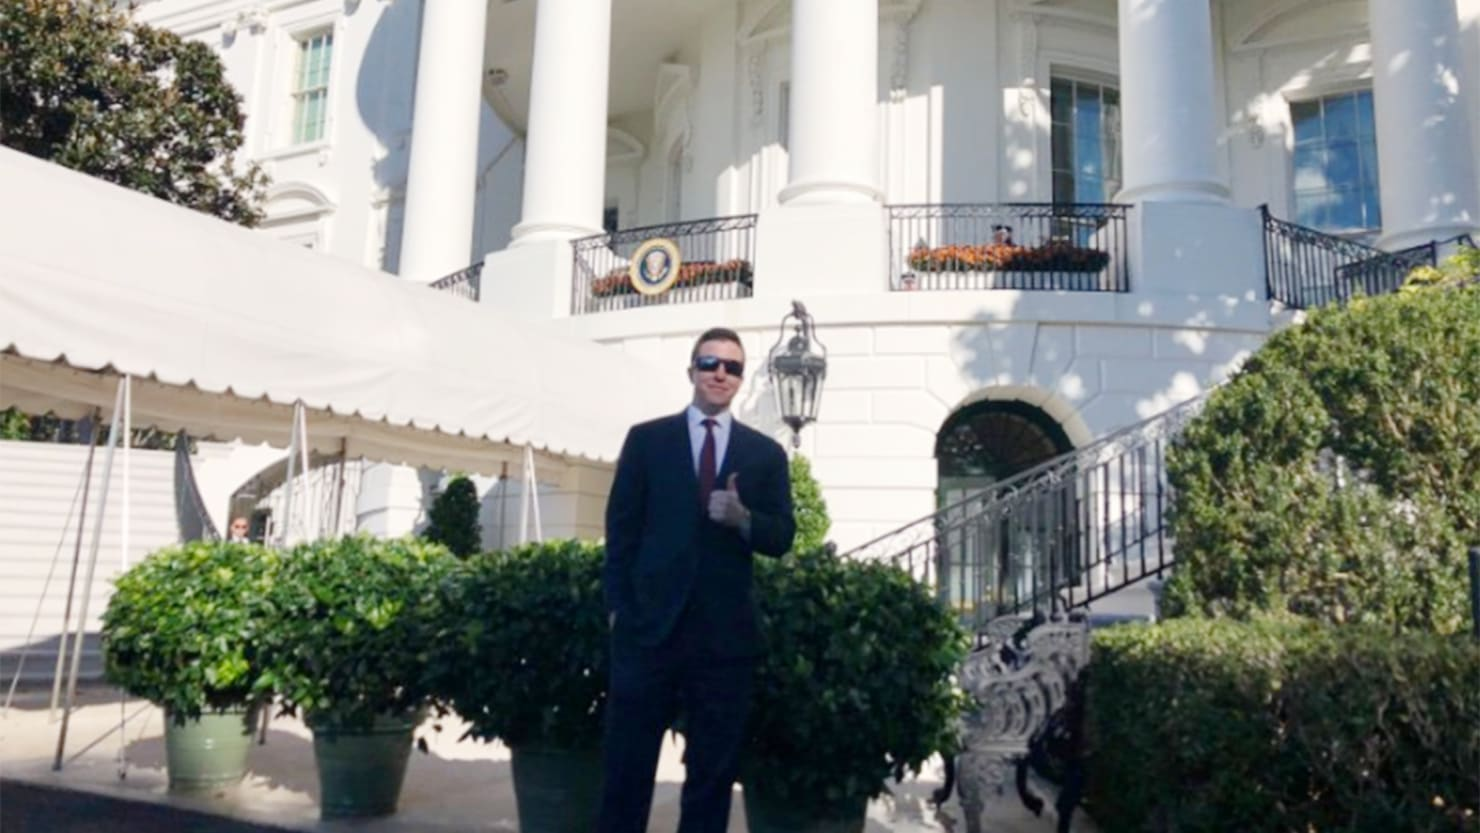 A White Nationalist Leader Just Posted Pics From His White House Visit